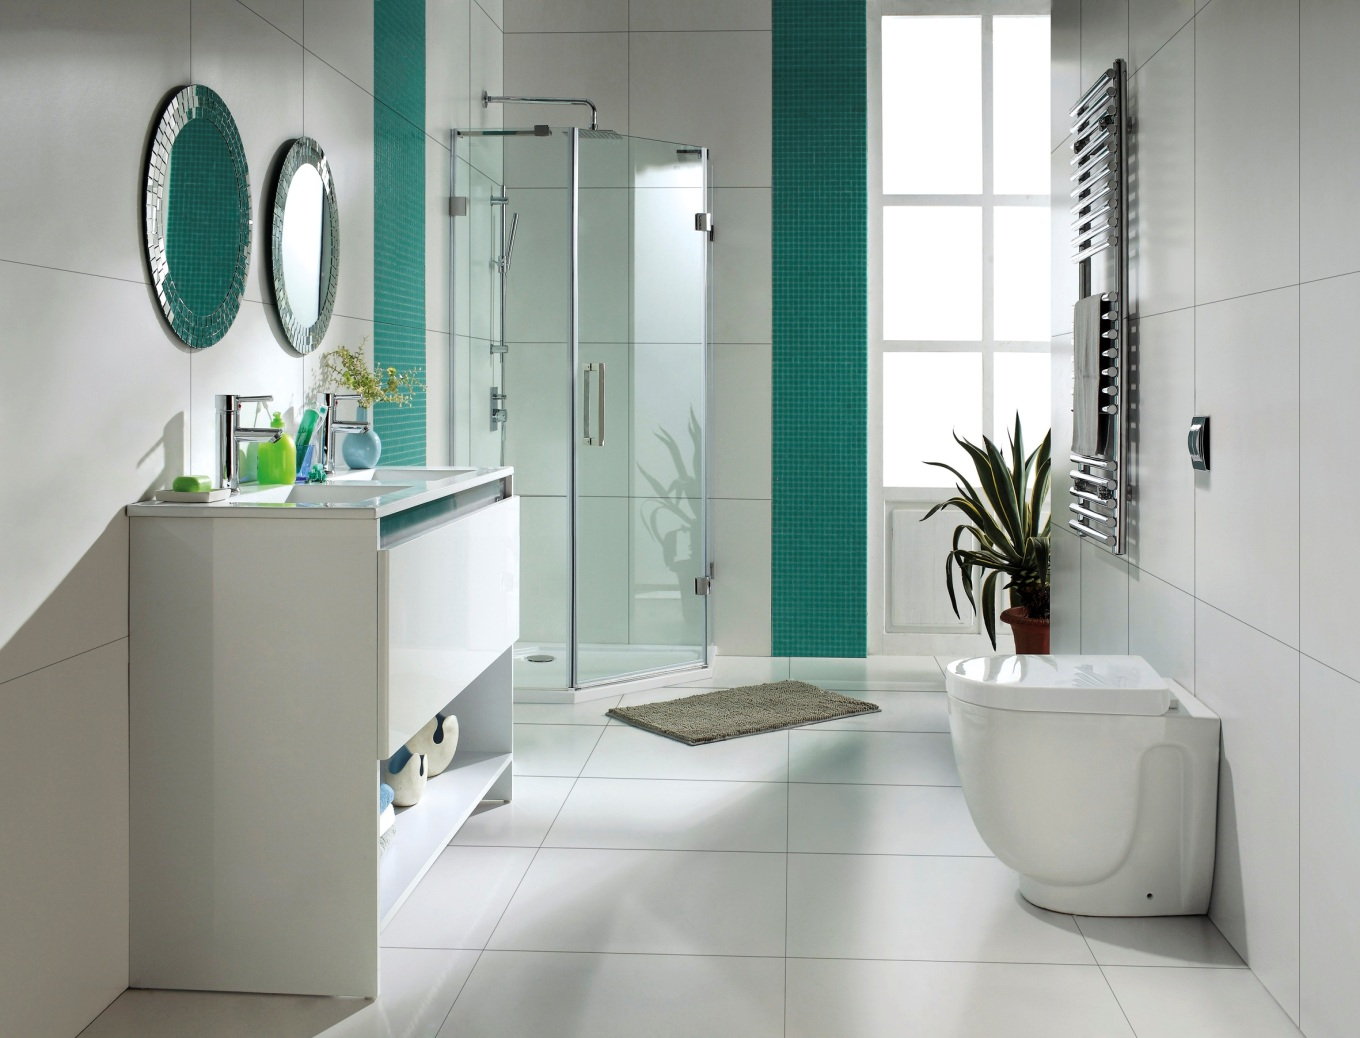 simple bathroom decorating ideas - midcityeast